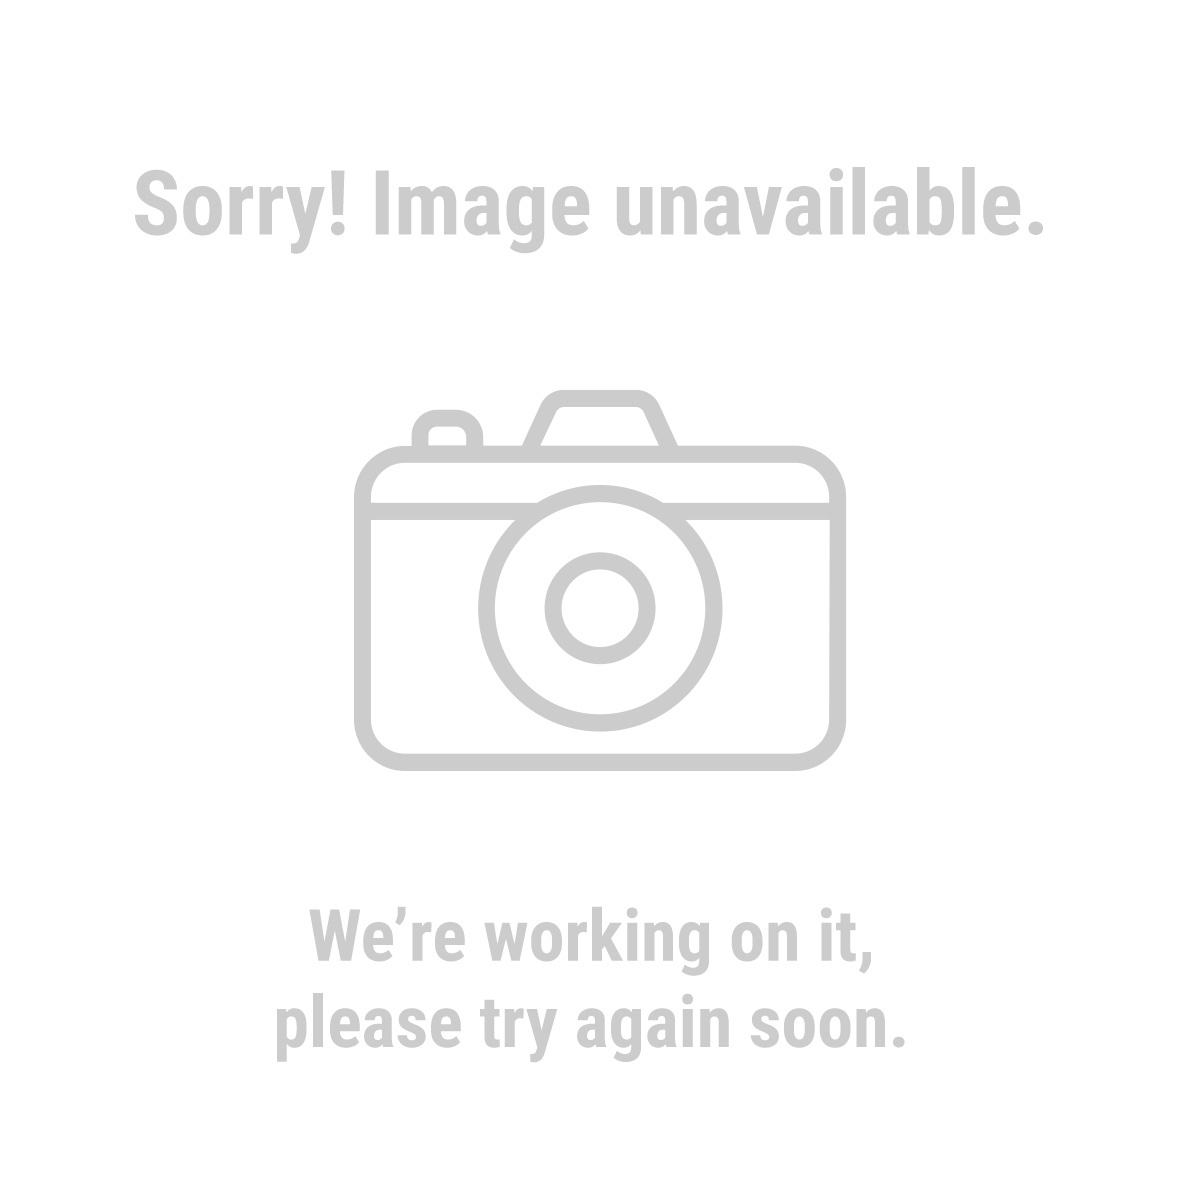 Central Pneumatic 69232 Air Hose Reel with 30 Ft. Hose